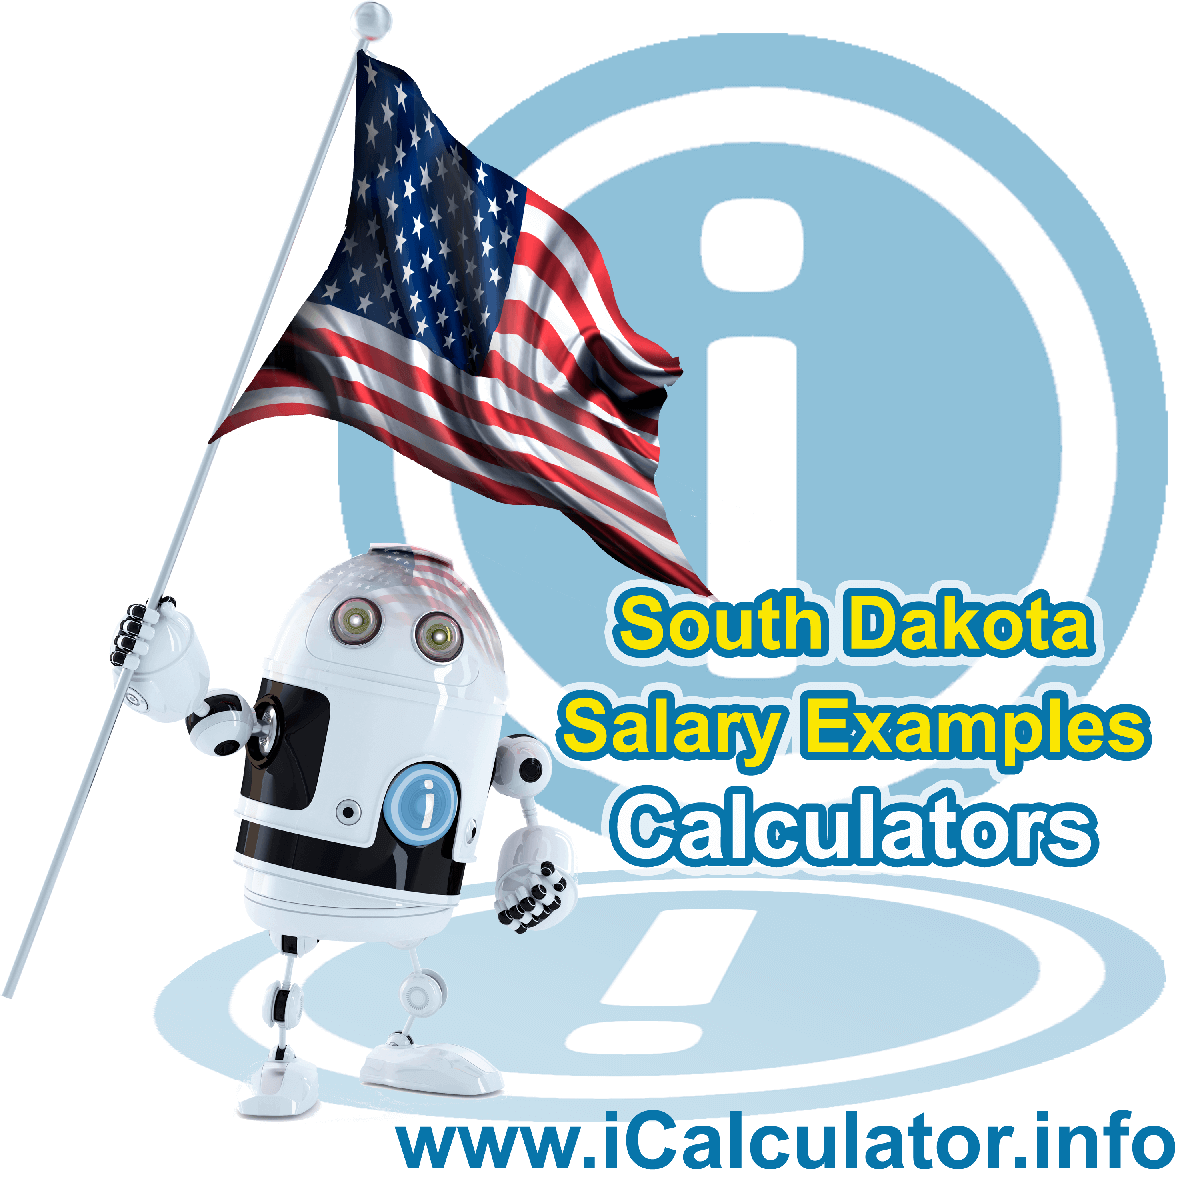 South Dakota Salary Example for $25,000.00 in 2020 | iCalculator | $25,000.00 salary example for employee and employer paying South Dakota State tincome taxes. Detailed salary after tax calculation including South Dakota State Tax, Federal State Tax, Medicare Deductions, Social Security, Capital Gains and other income tax and salary deductions complete with supporting South Dakota state tax tables